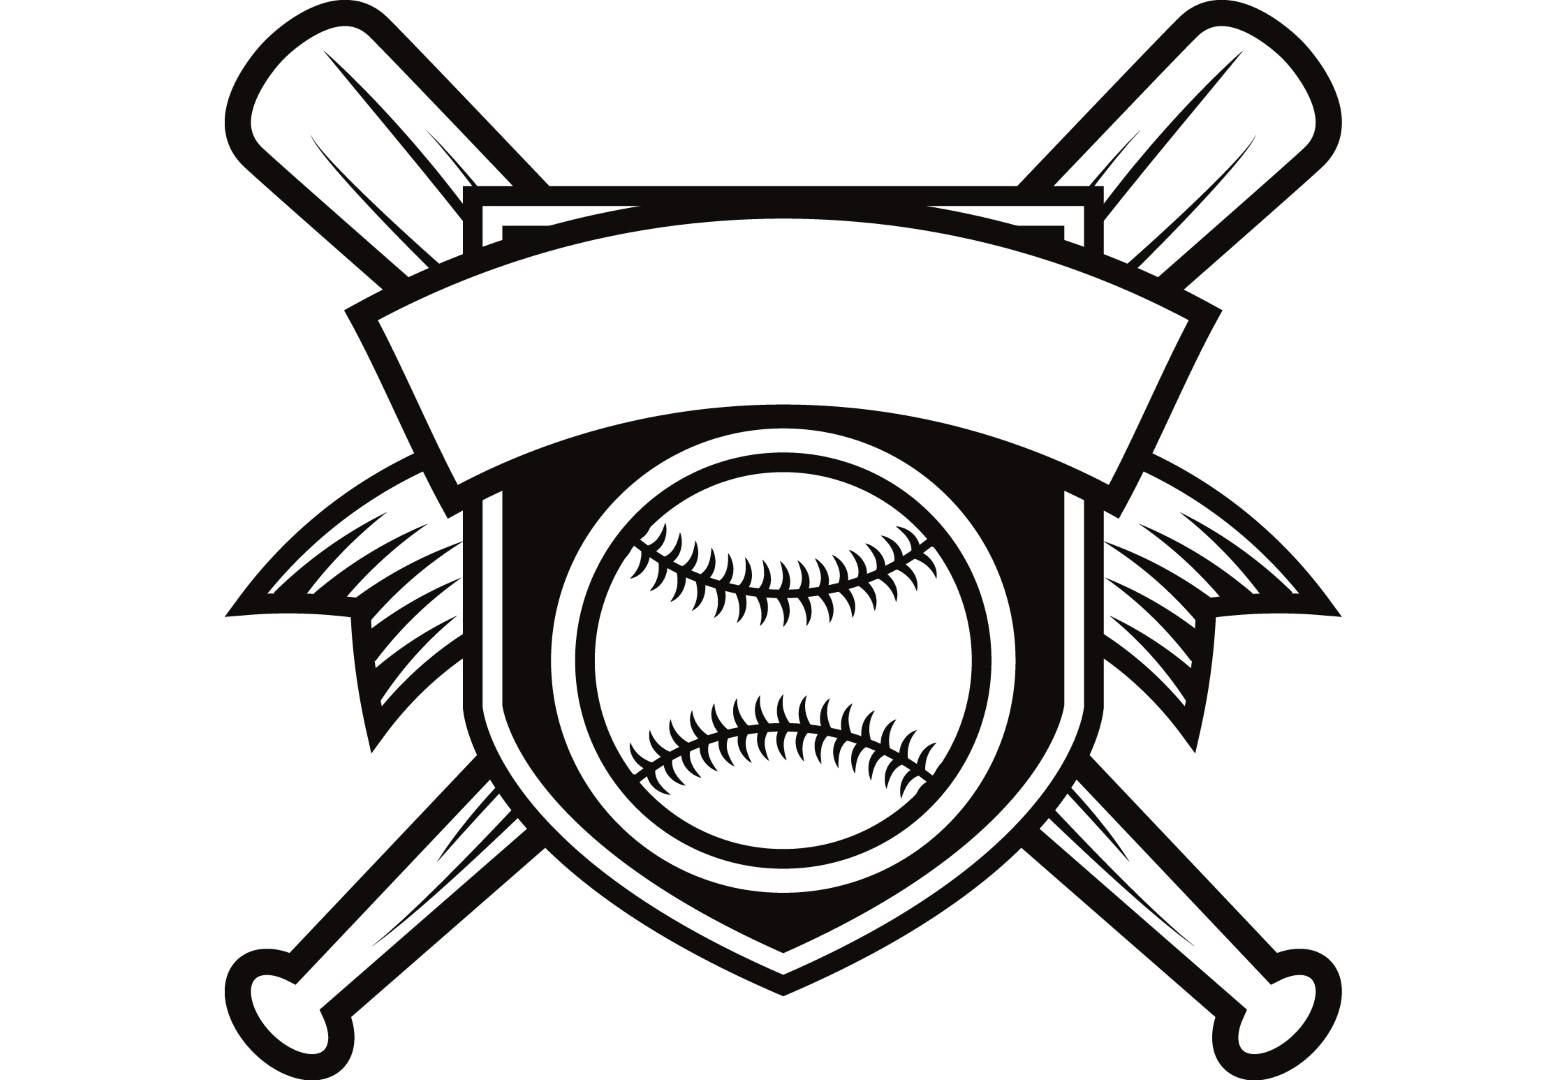 1567x1080 Baseball Logo 2 Banner Bats Crossed Ball Diamond Sports